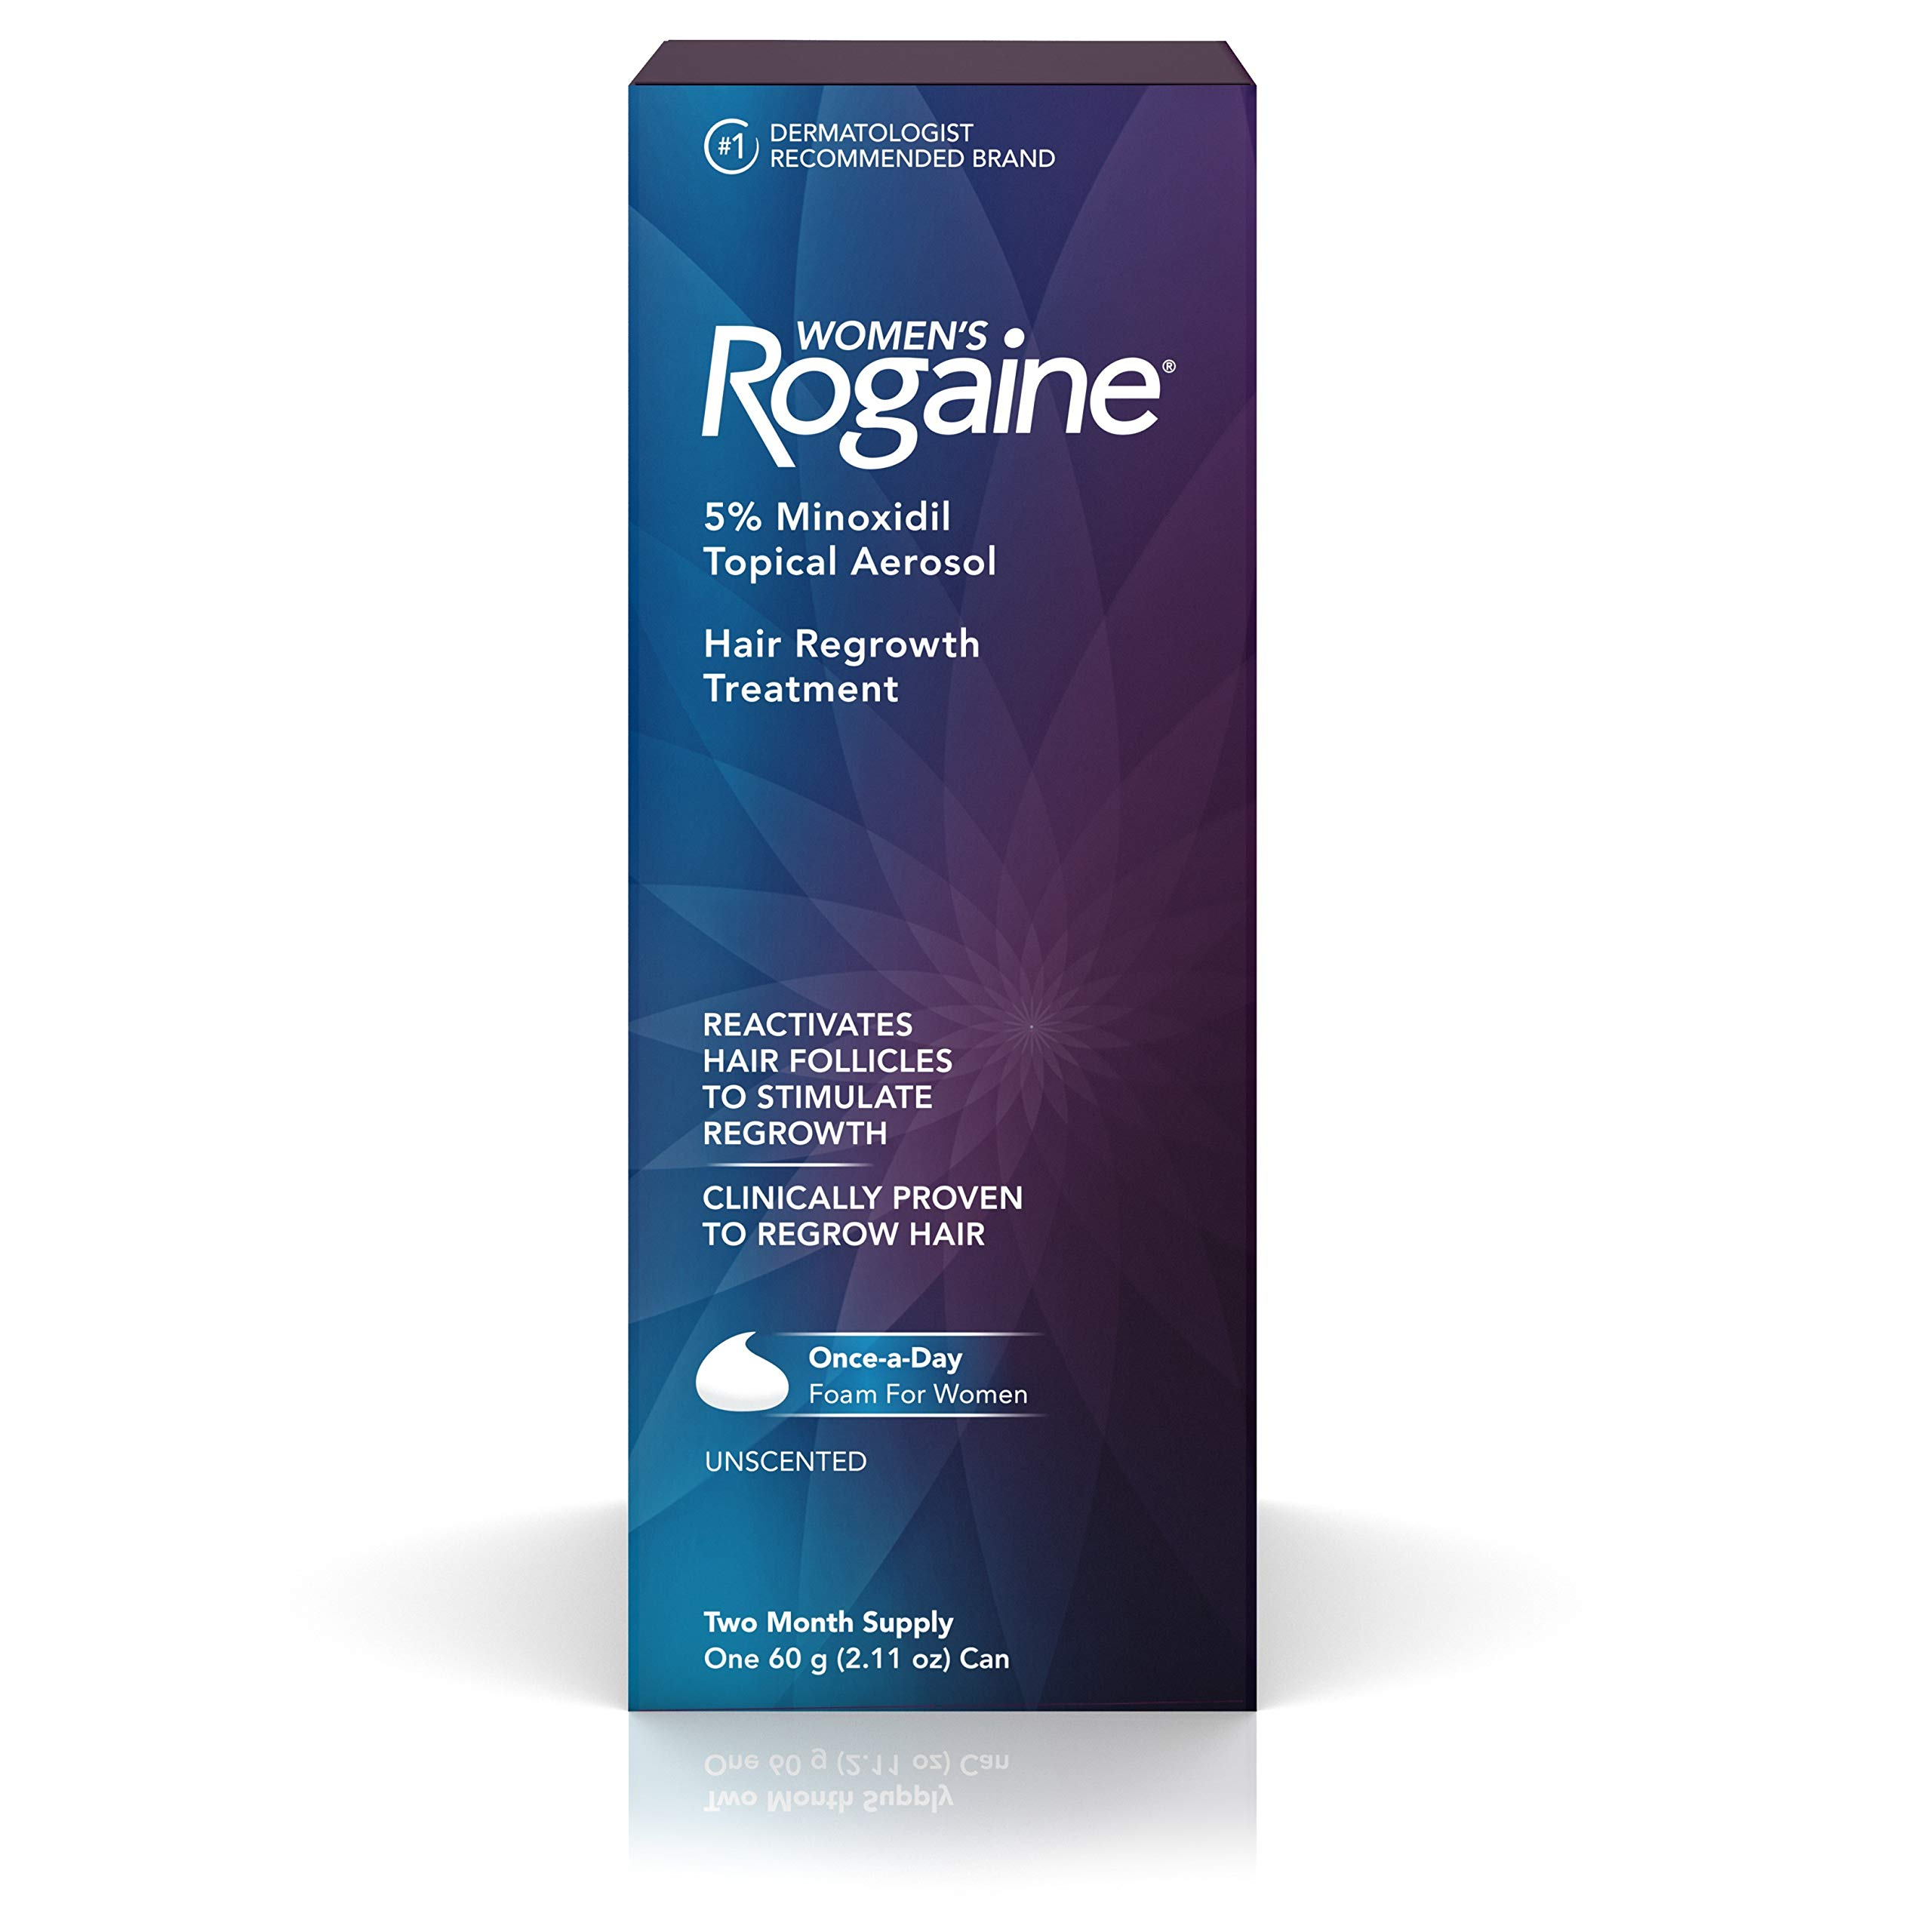 Women's Rogaine 5% Minoxidil Foam for Hair Thinning and Loss, Topical Treatment for Women's Hair Regrowth, 2-Month Supply